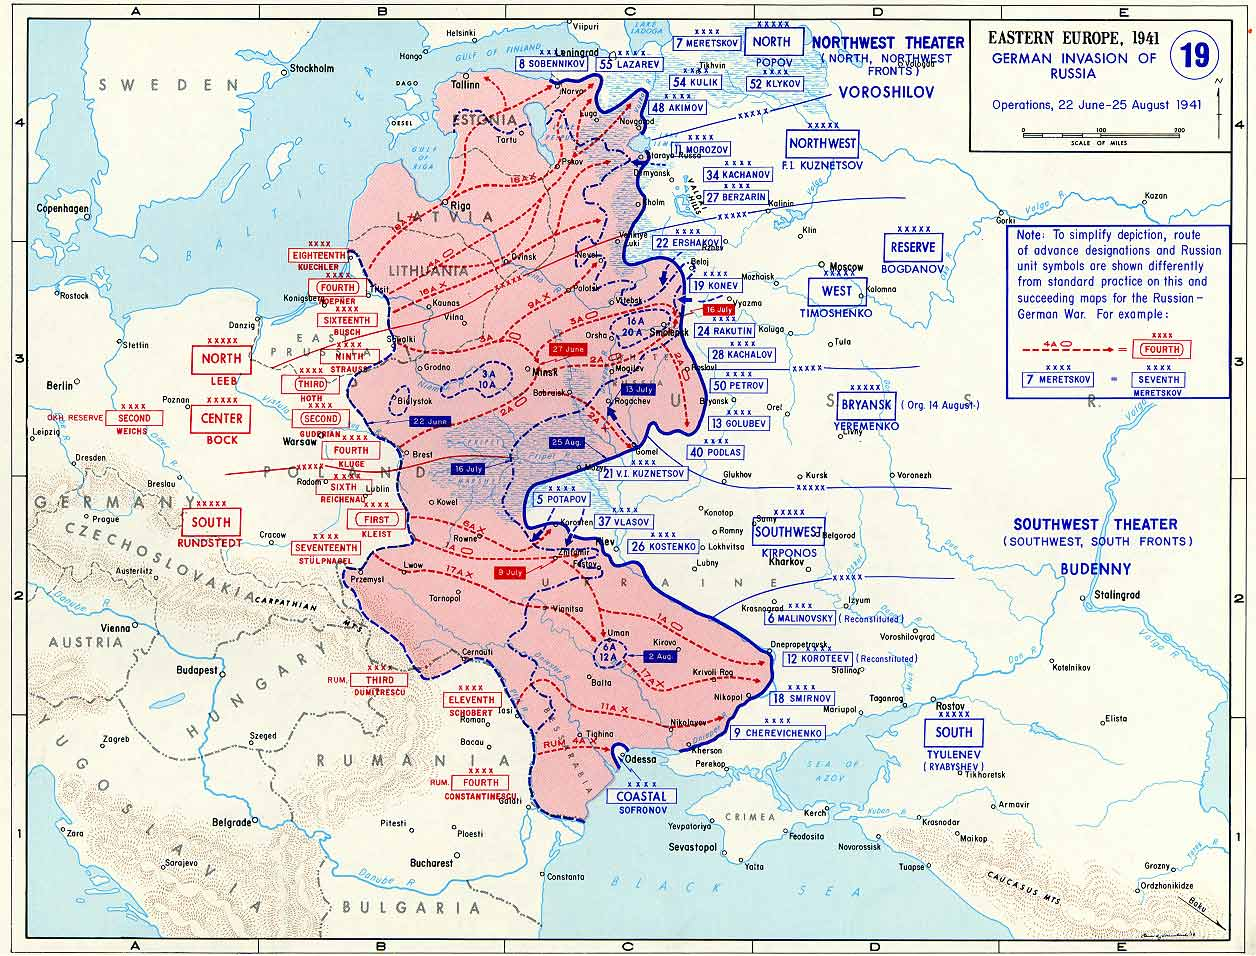 wwii war theatre maps german invasion of russia